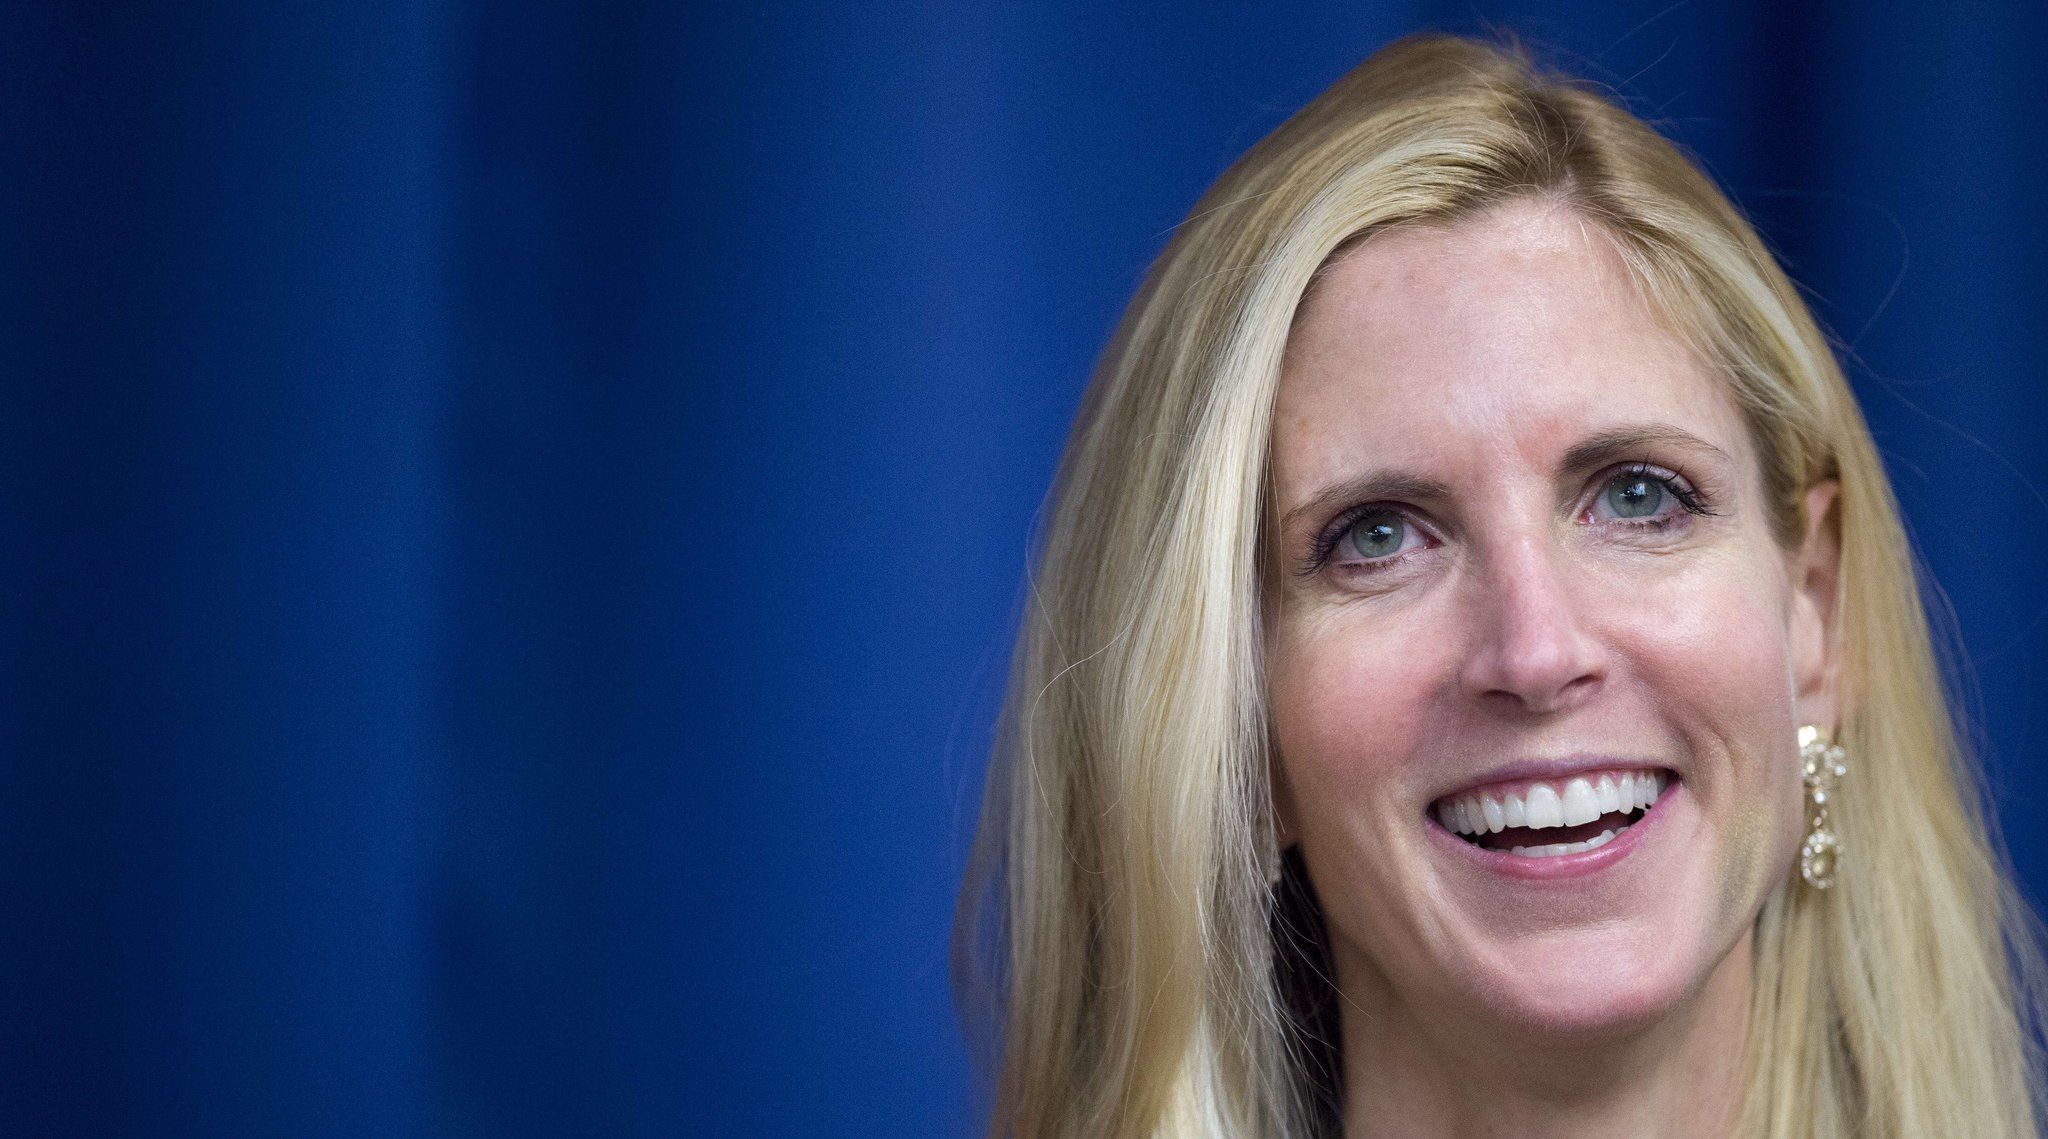 Battle for Berkeley: Will Ann Coulter spark another clash? - Chicago Tribune